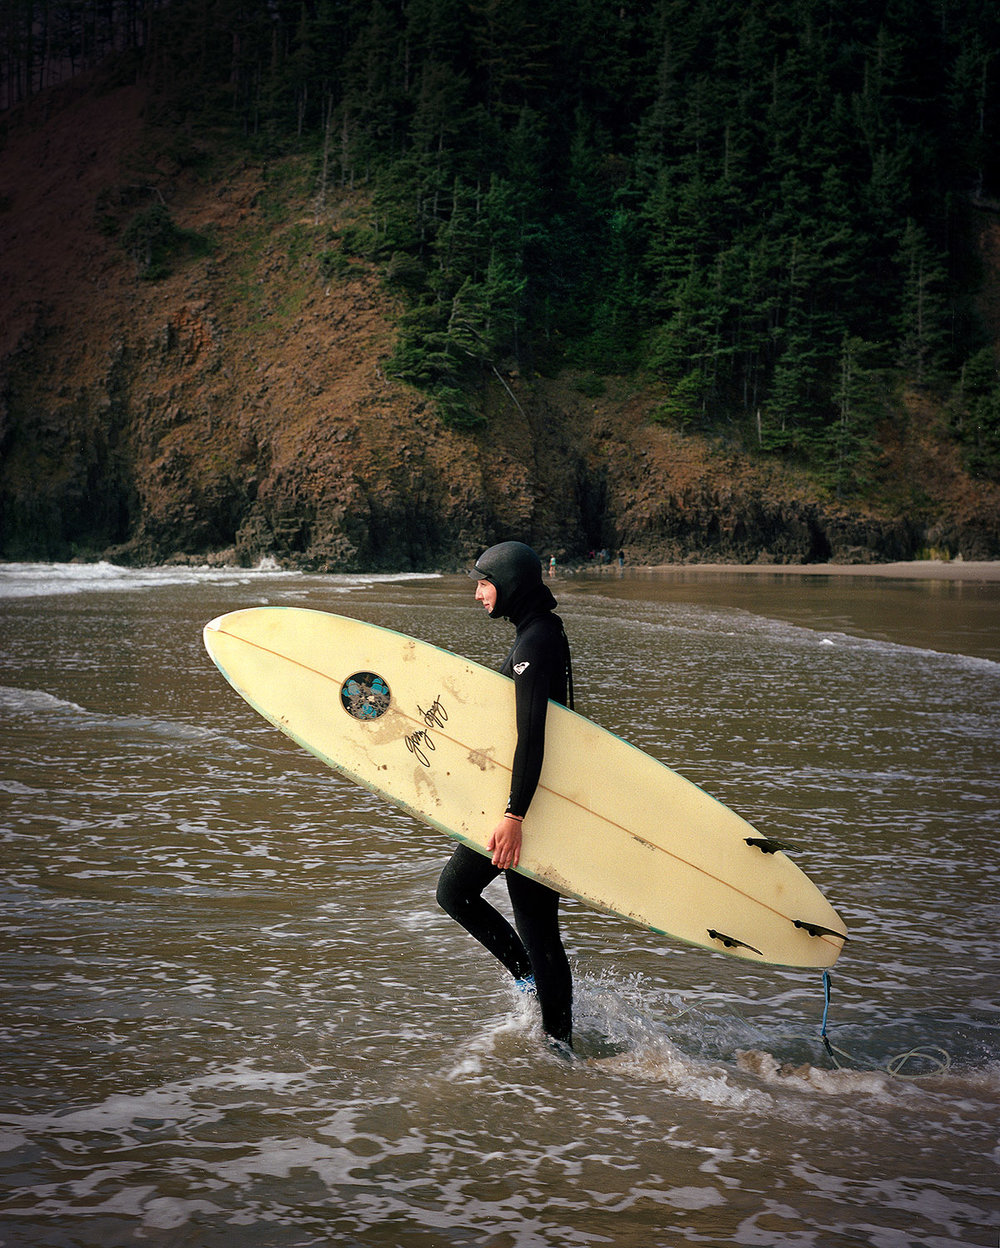 surfing6_edit.jpg